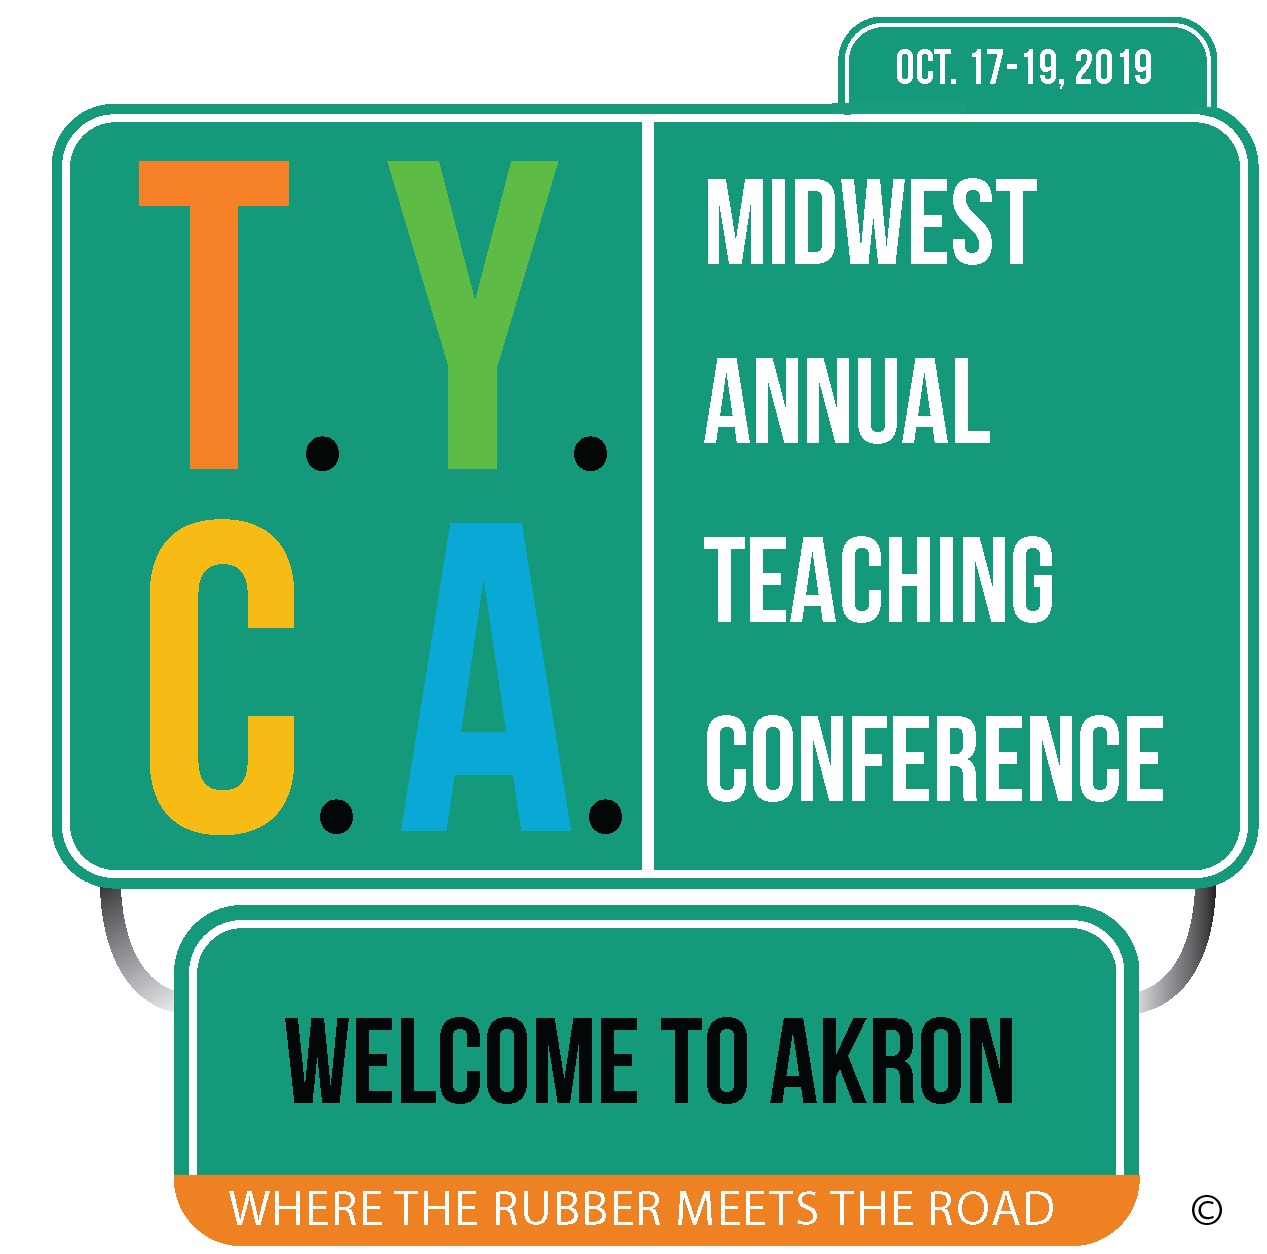 TYCA Midwest Conference 2019